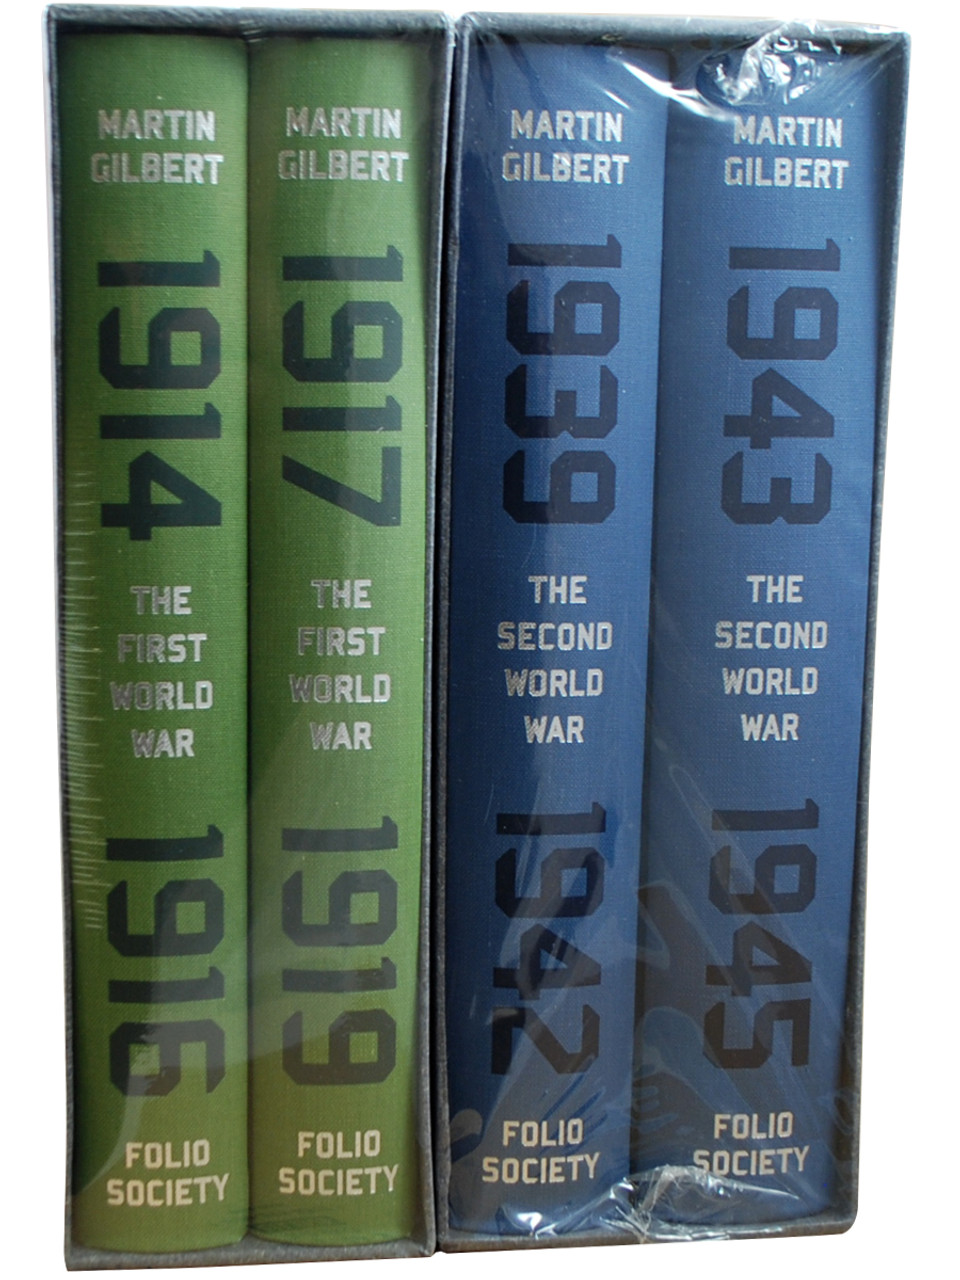 """Martin Gilbert """"The First World War"""" & """"The Second World War"""" Slipcased Deluxe Limited Edition, 4-Vol. Matched Set [Sealed]"""